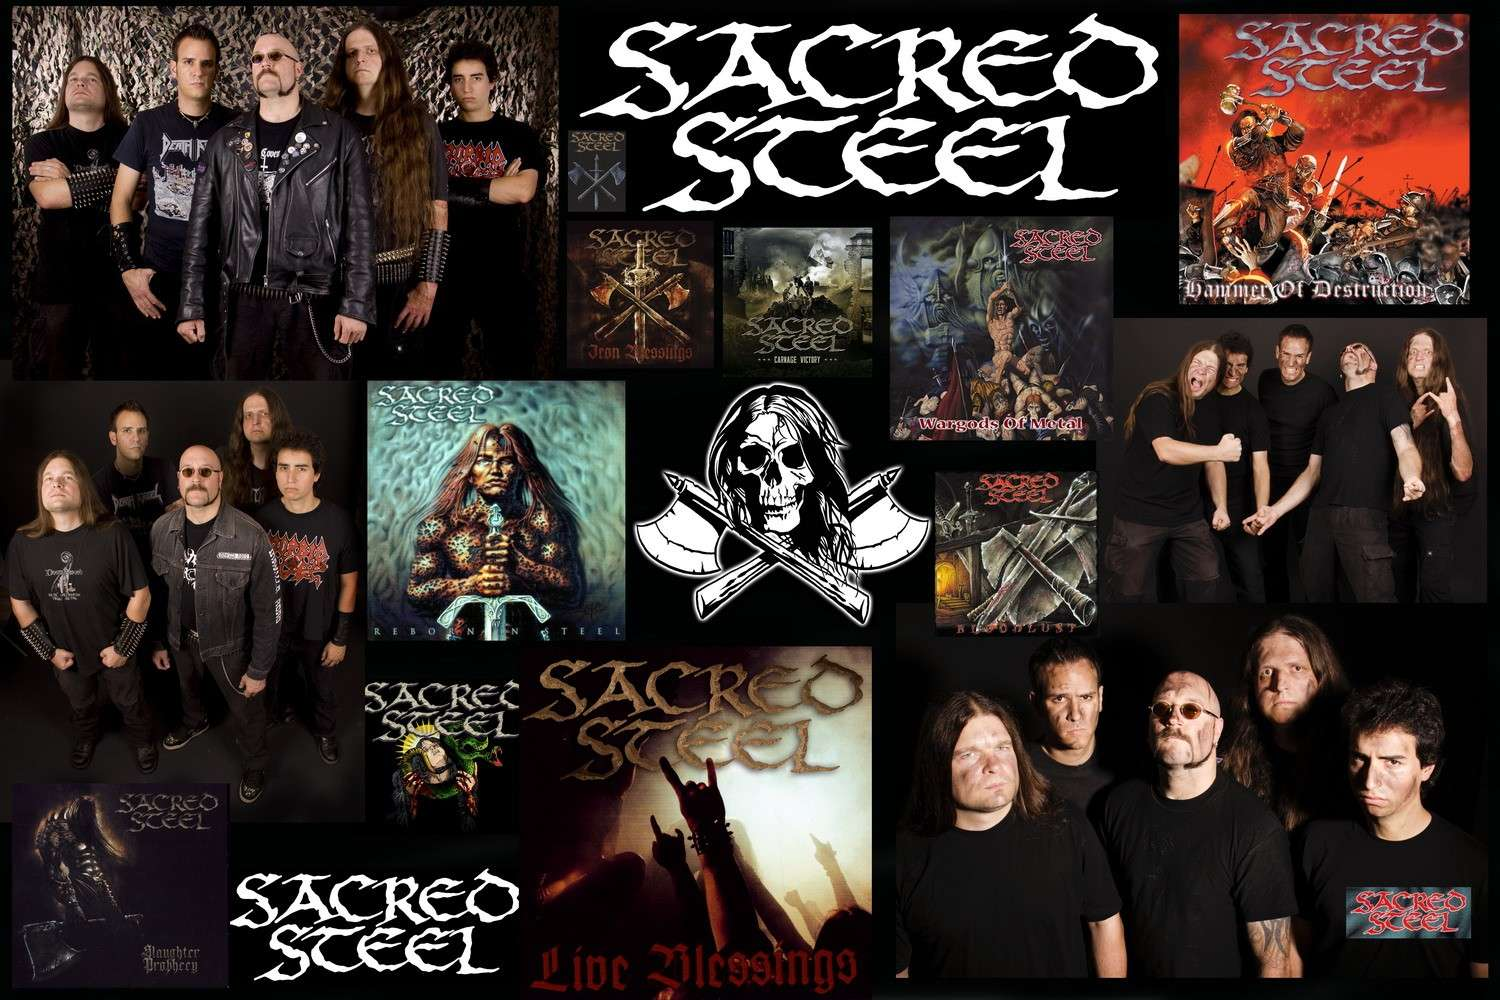 Mes petits montages photos ... - Page 4 Sacred10